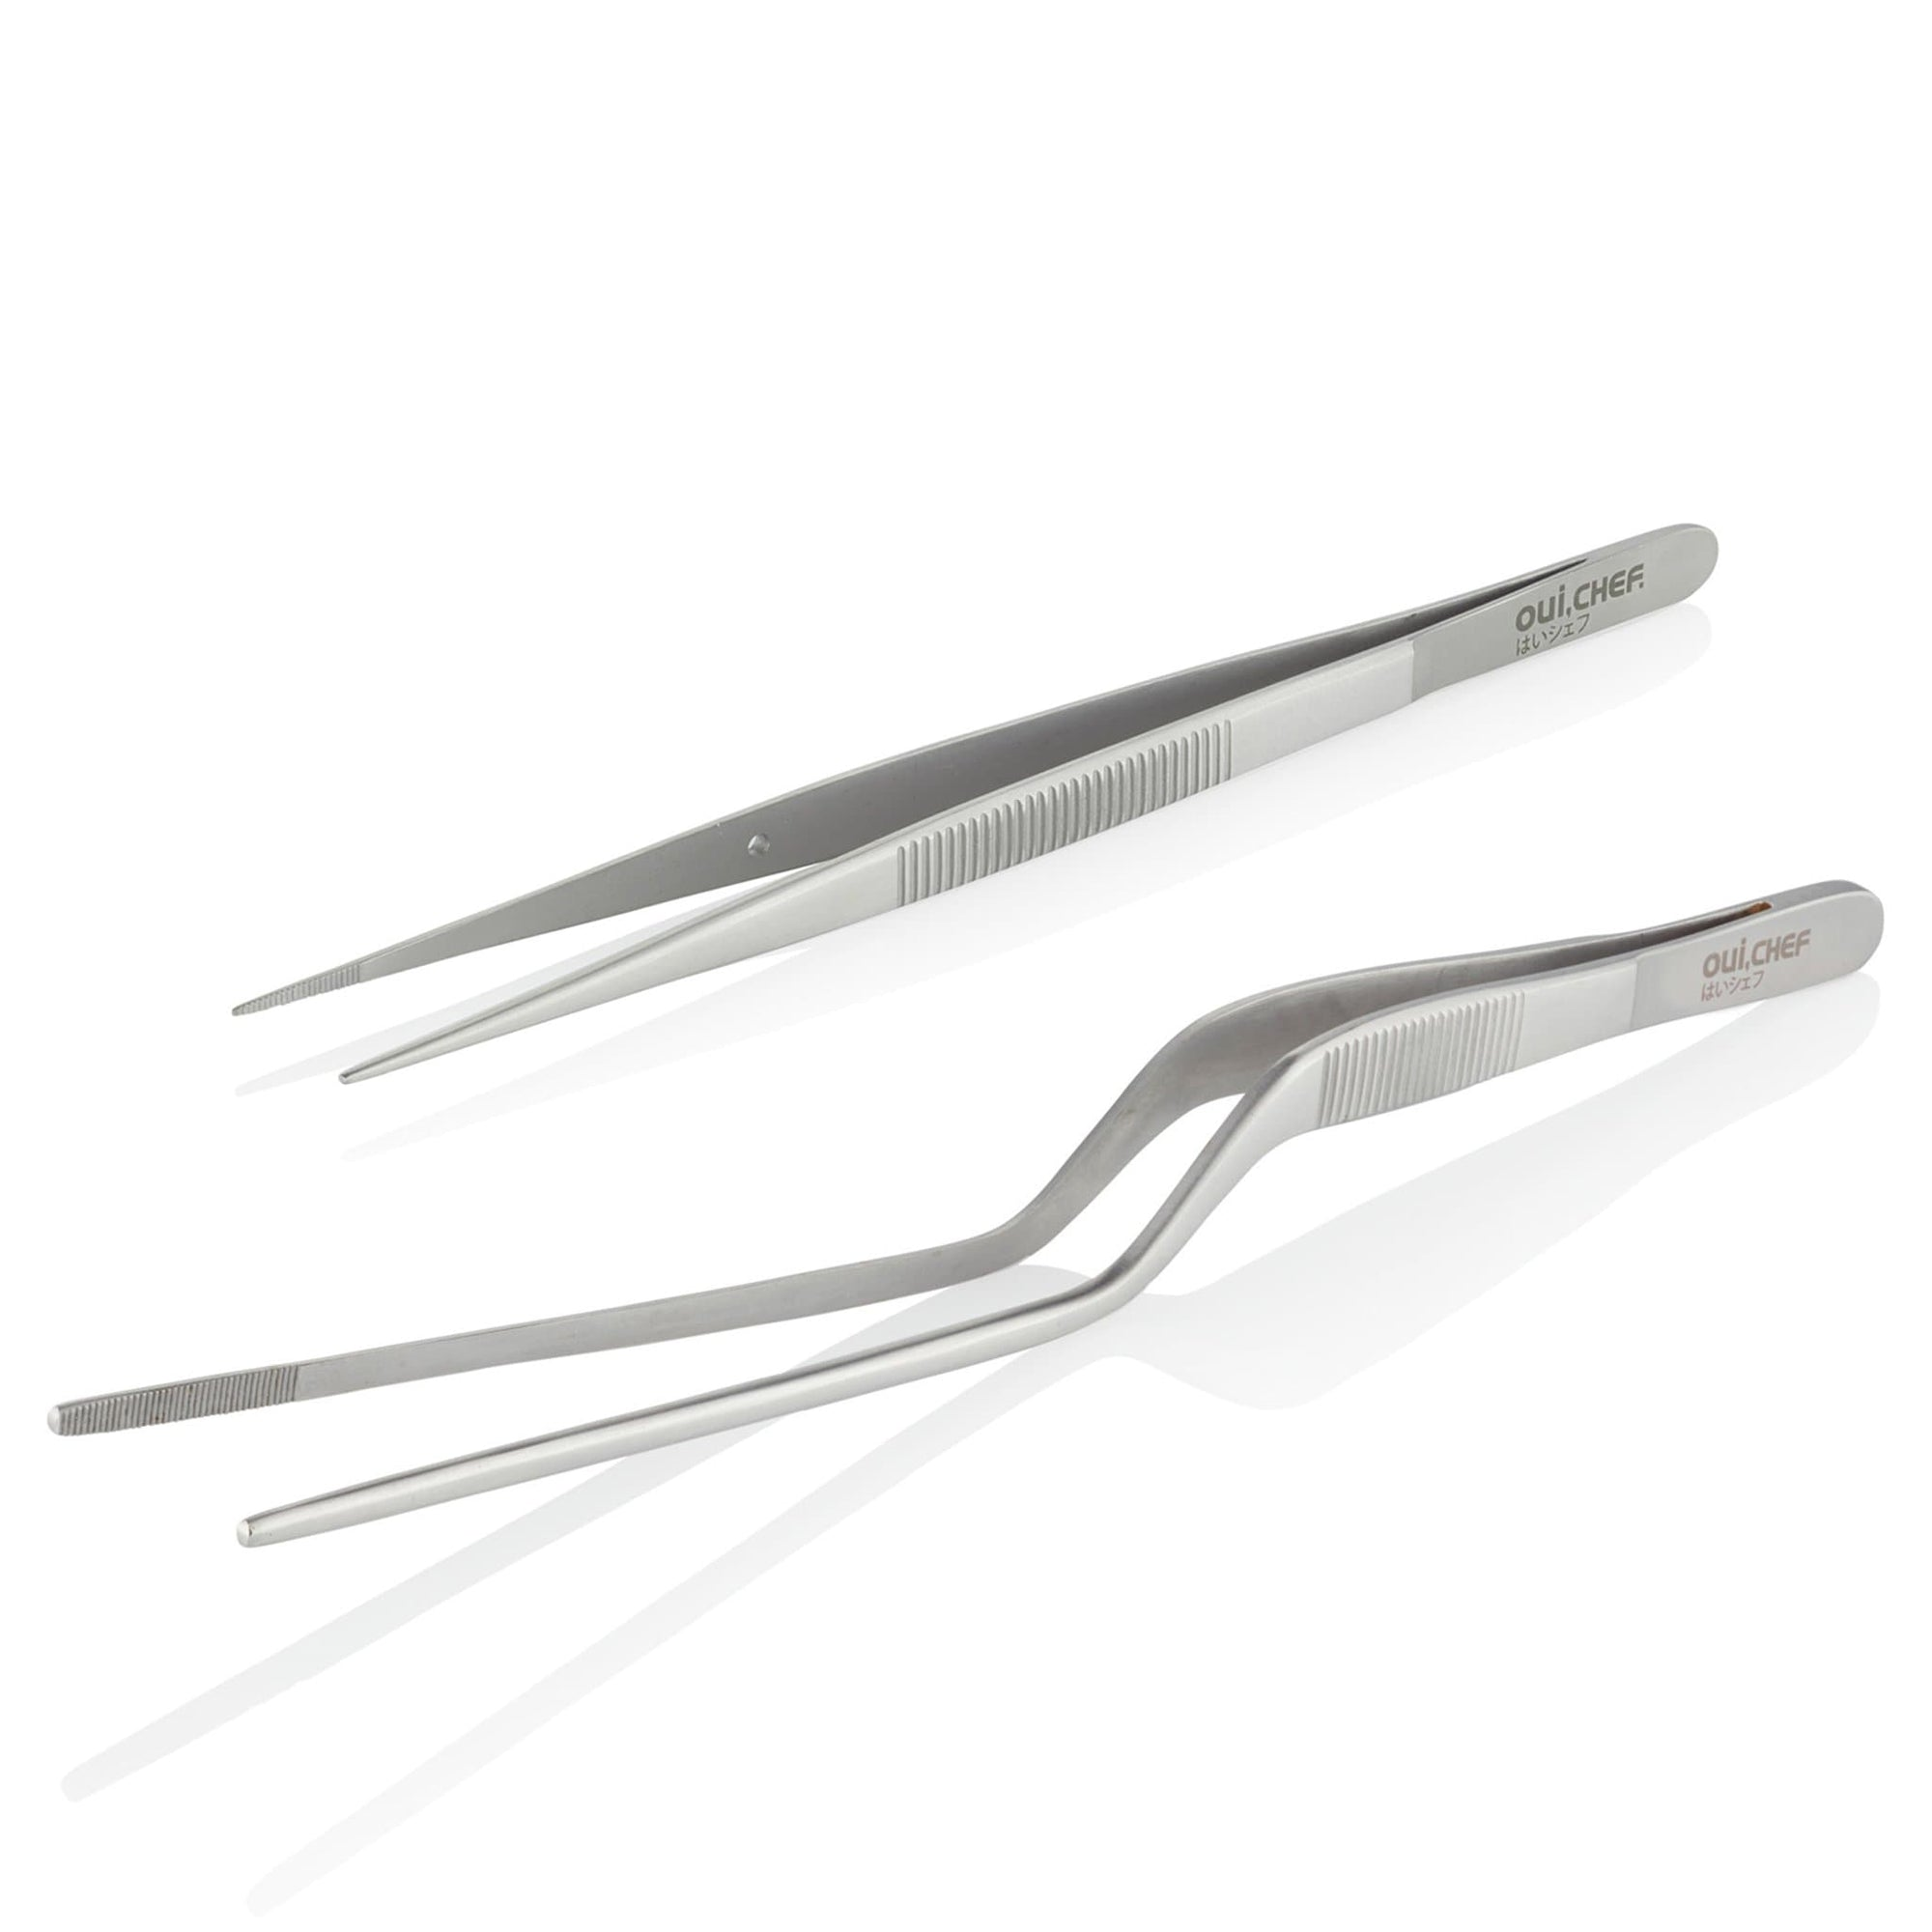 oui chef tweezers kit offset superfine small medium stainless steel